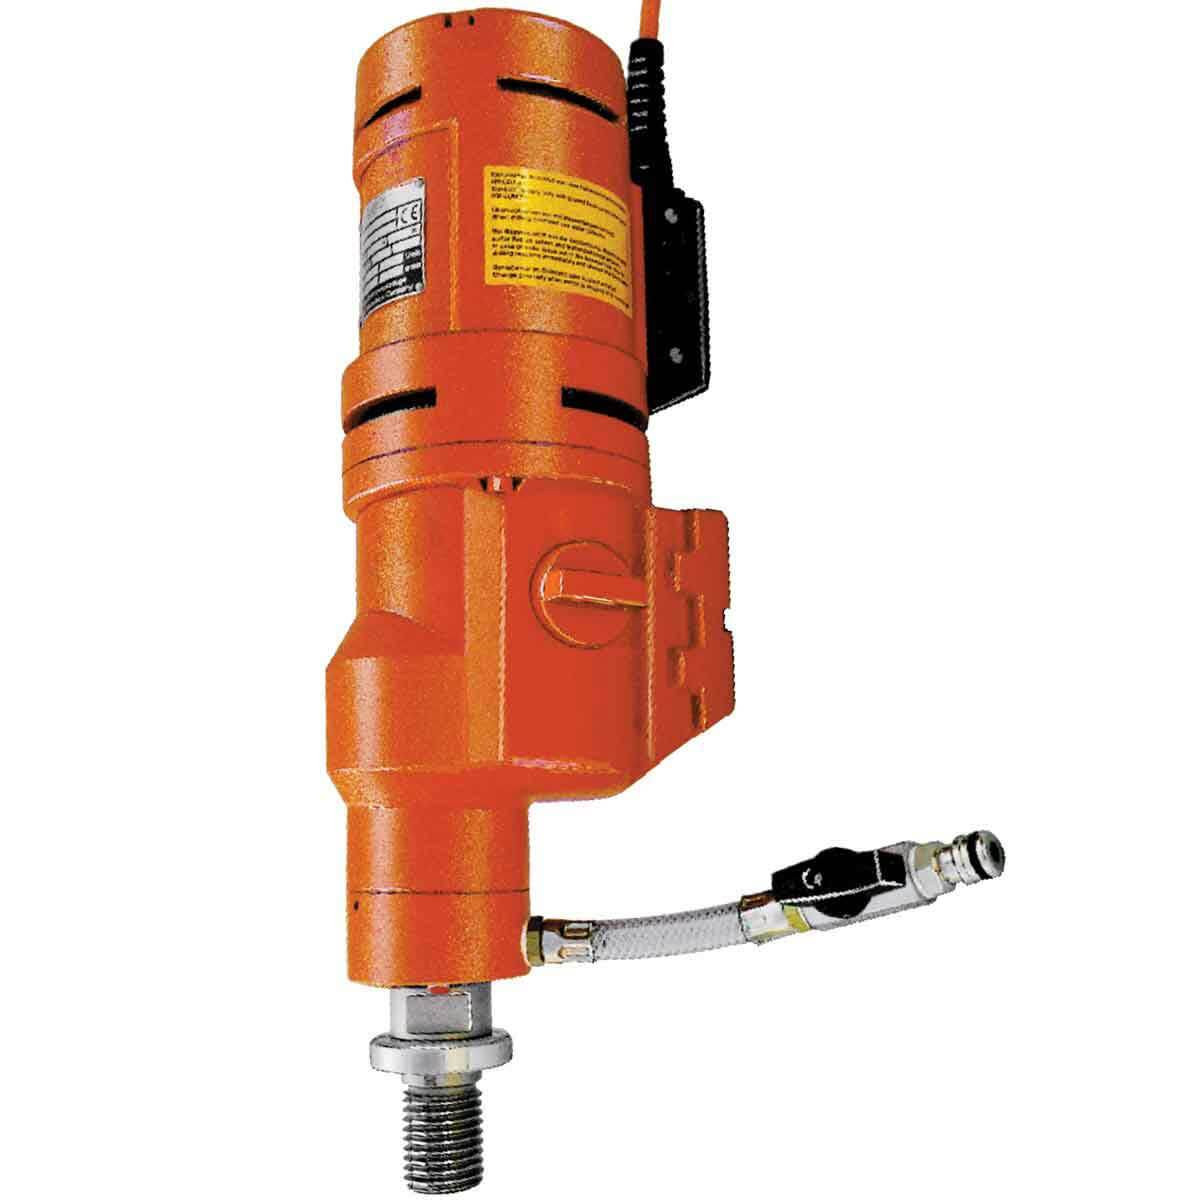 Core Bore Weka DK32 Wet Core Drill